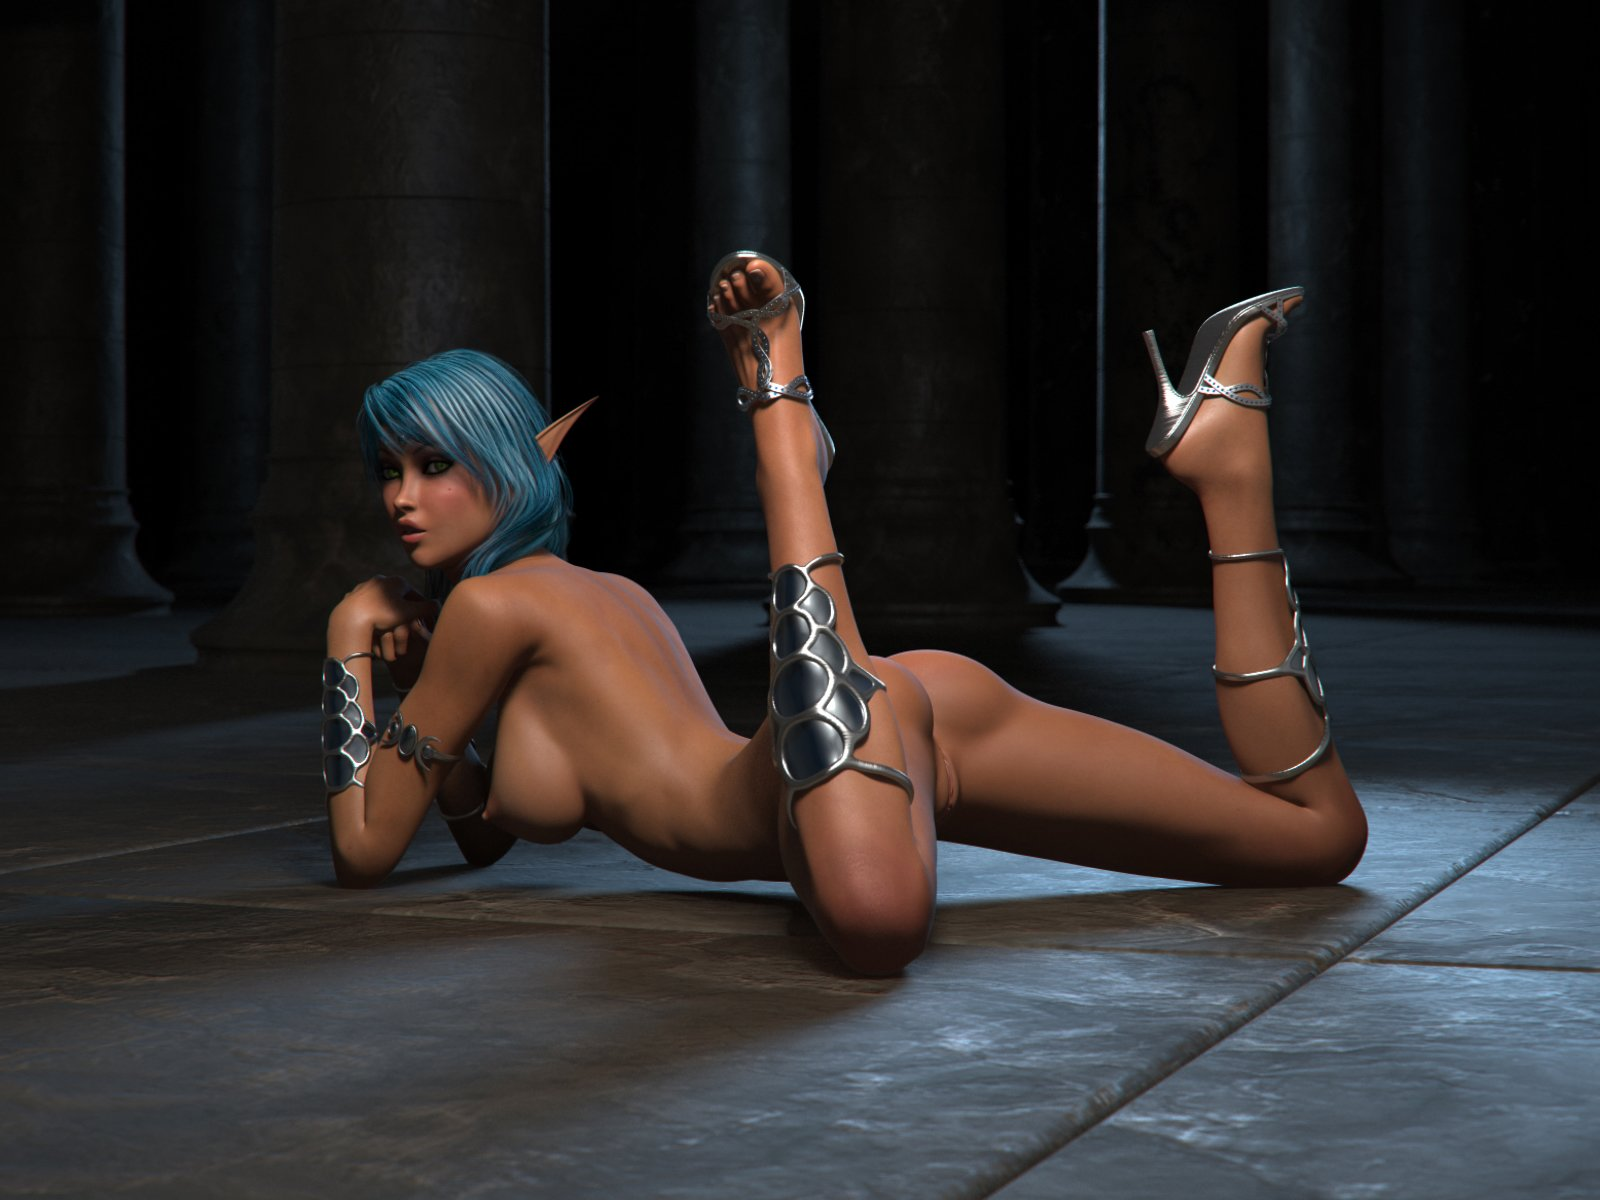 Hot sexy 3d elven hentai girls sex pic